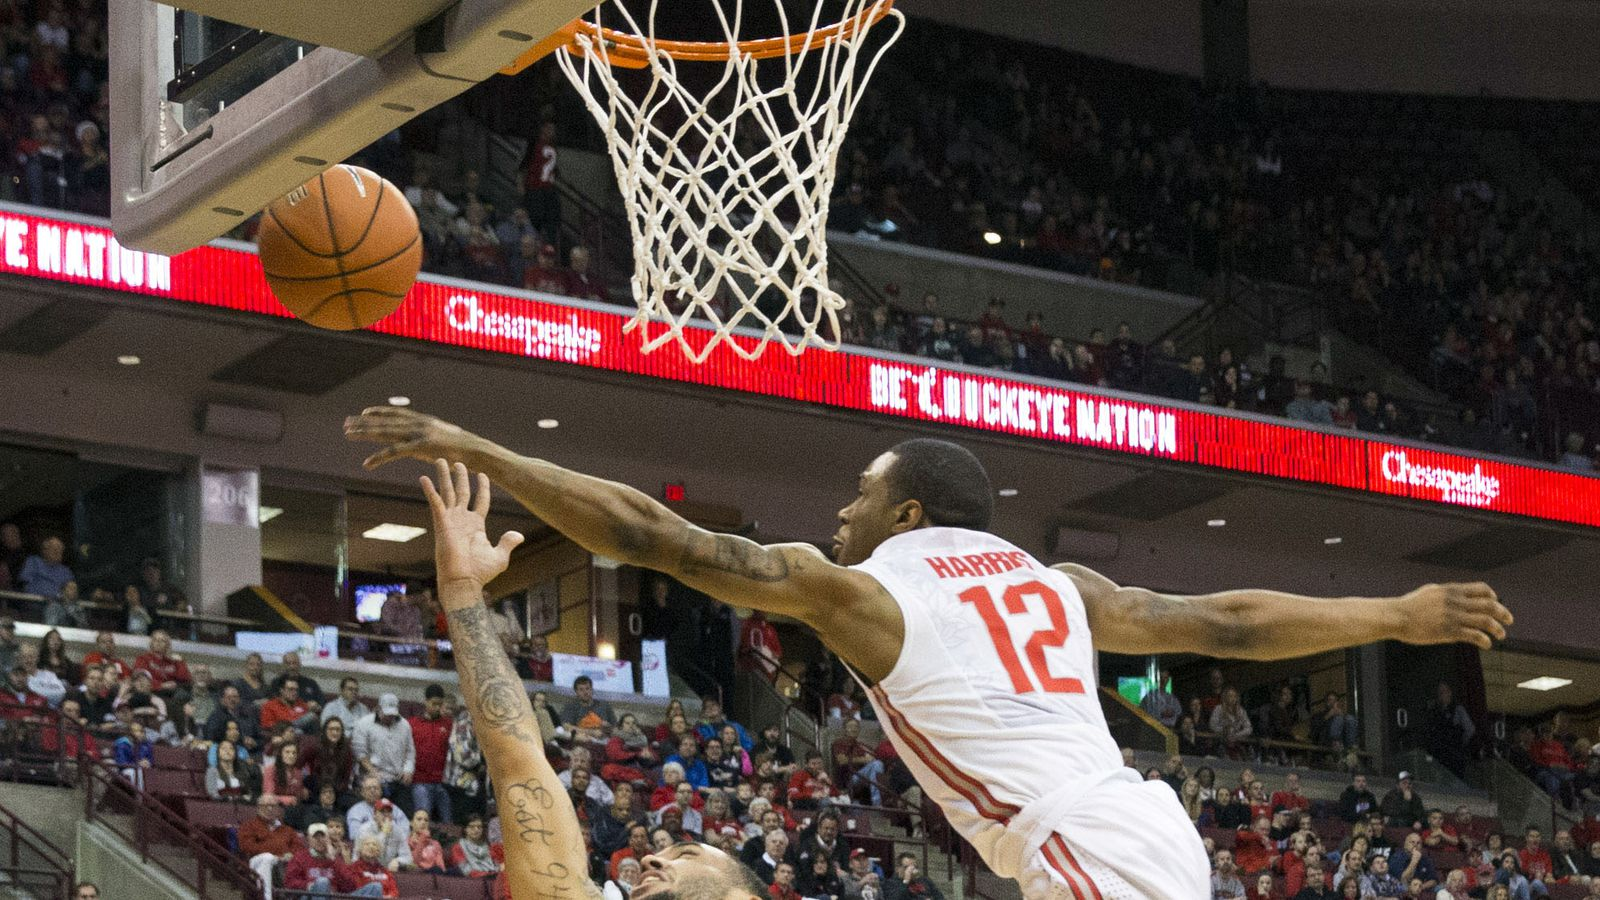 Ohio State's 5'9 point guard chased a guy down from behind ...